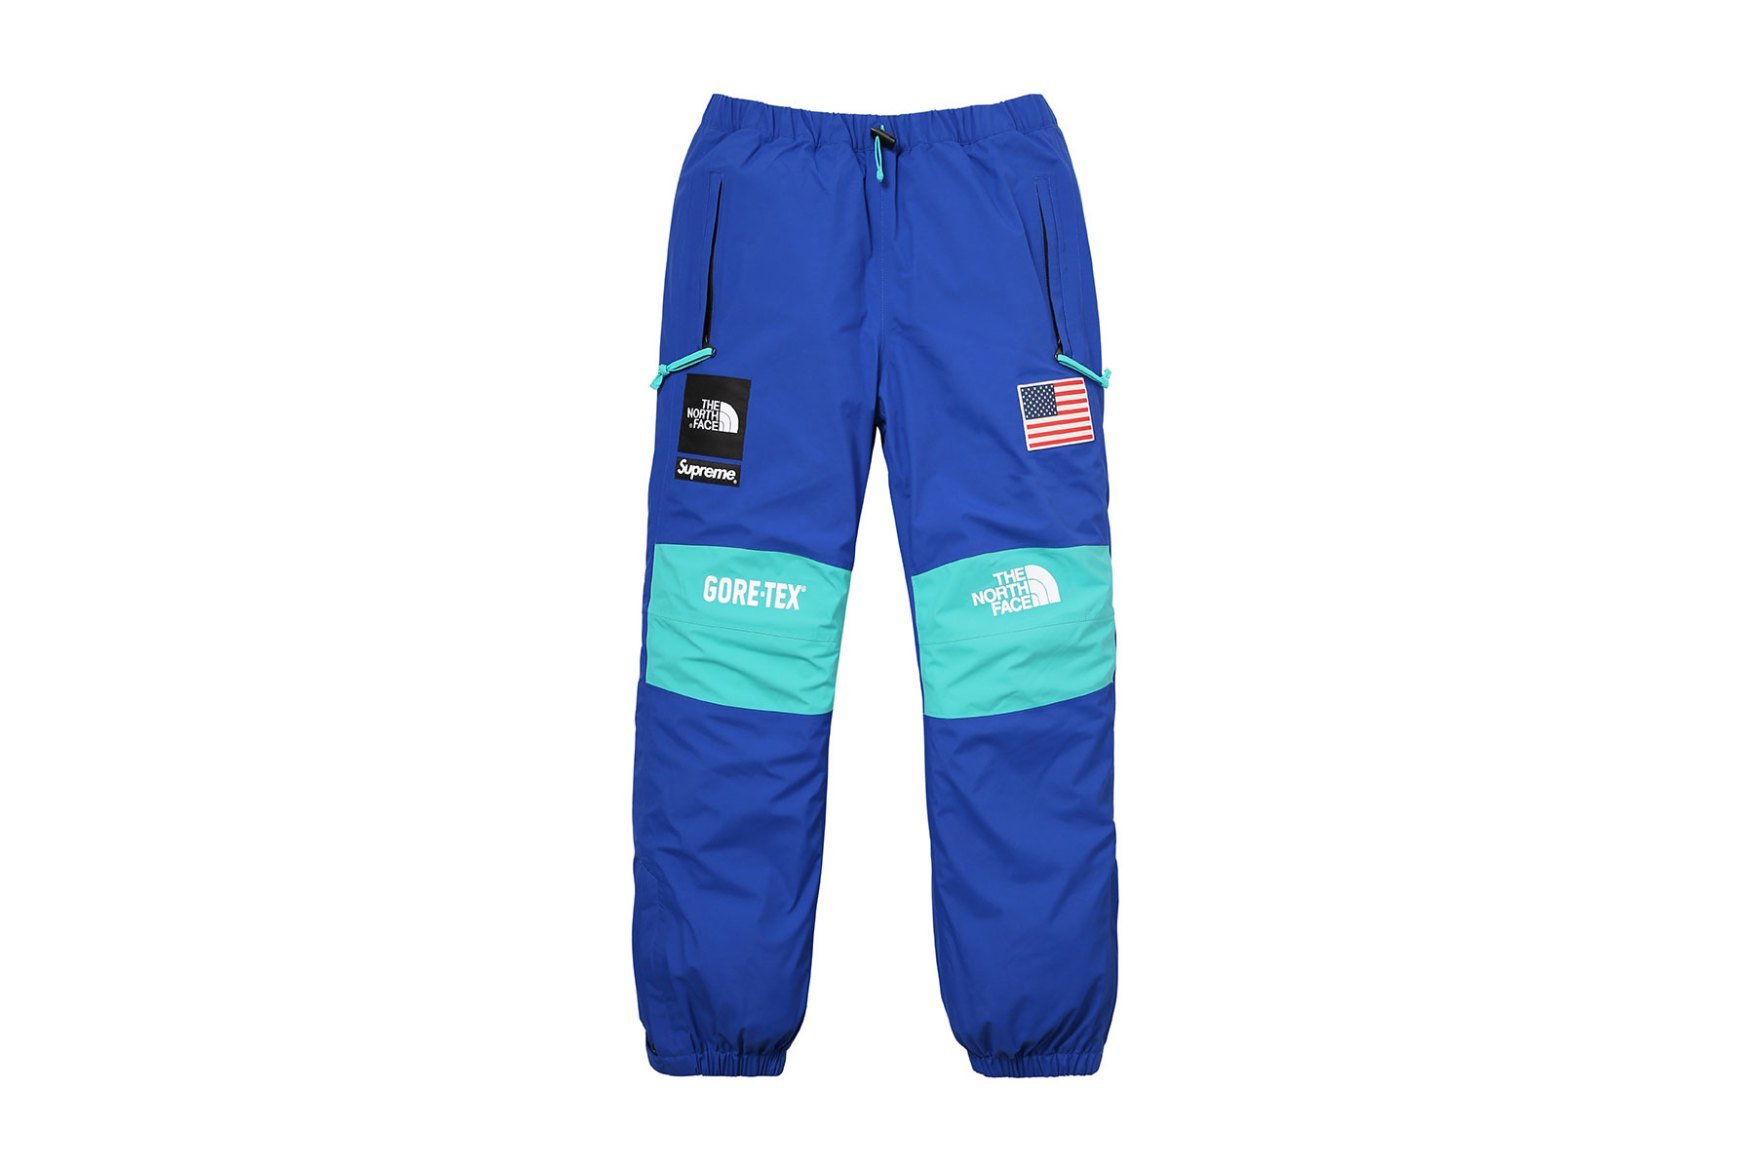 supreme-the-north-face-2017-spring-summer-blue-royal-gore-tex-pant-17